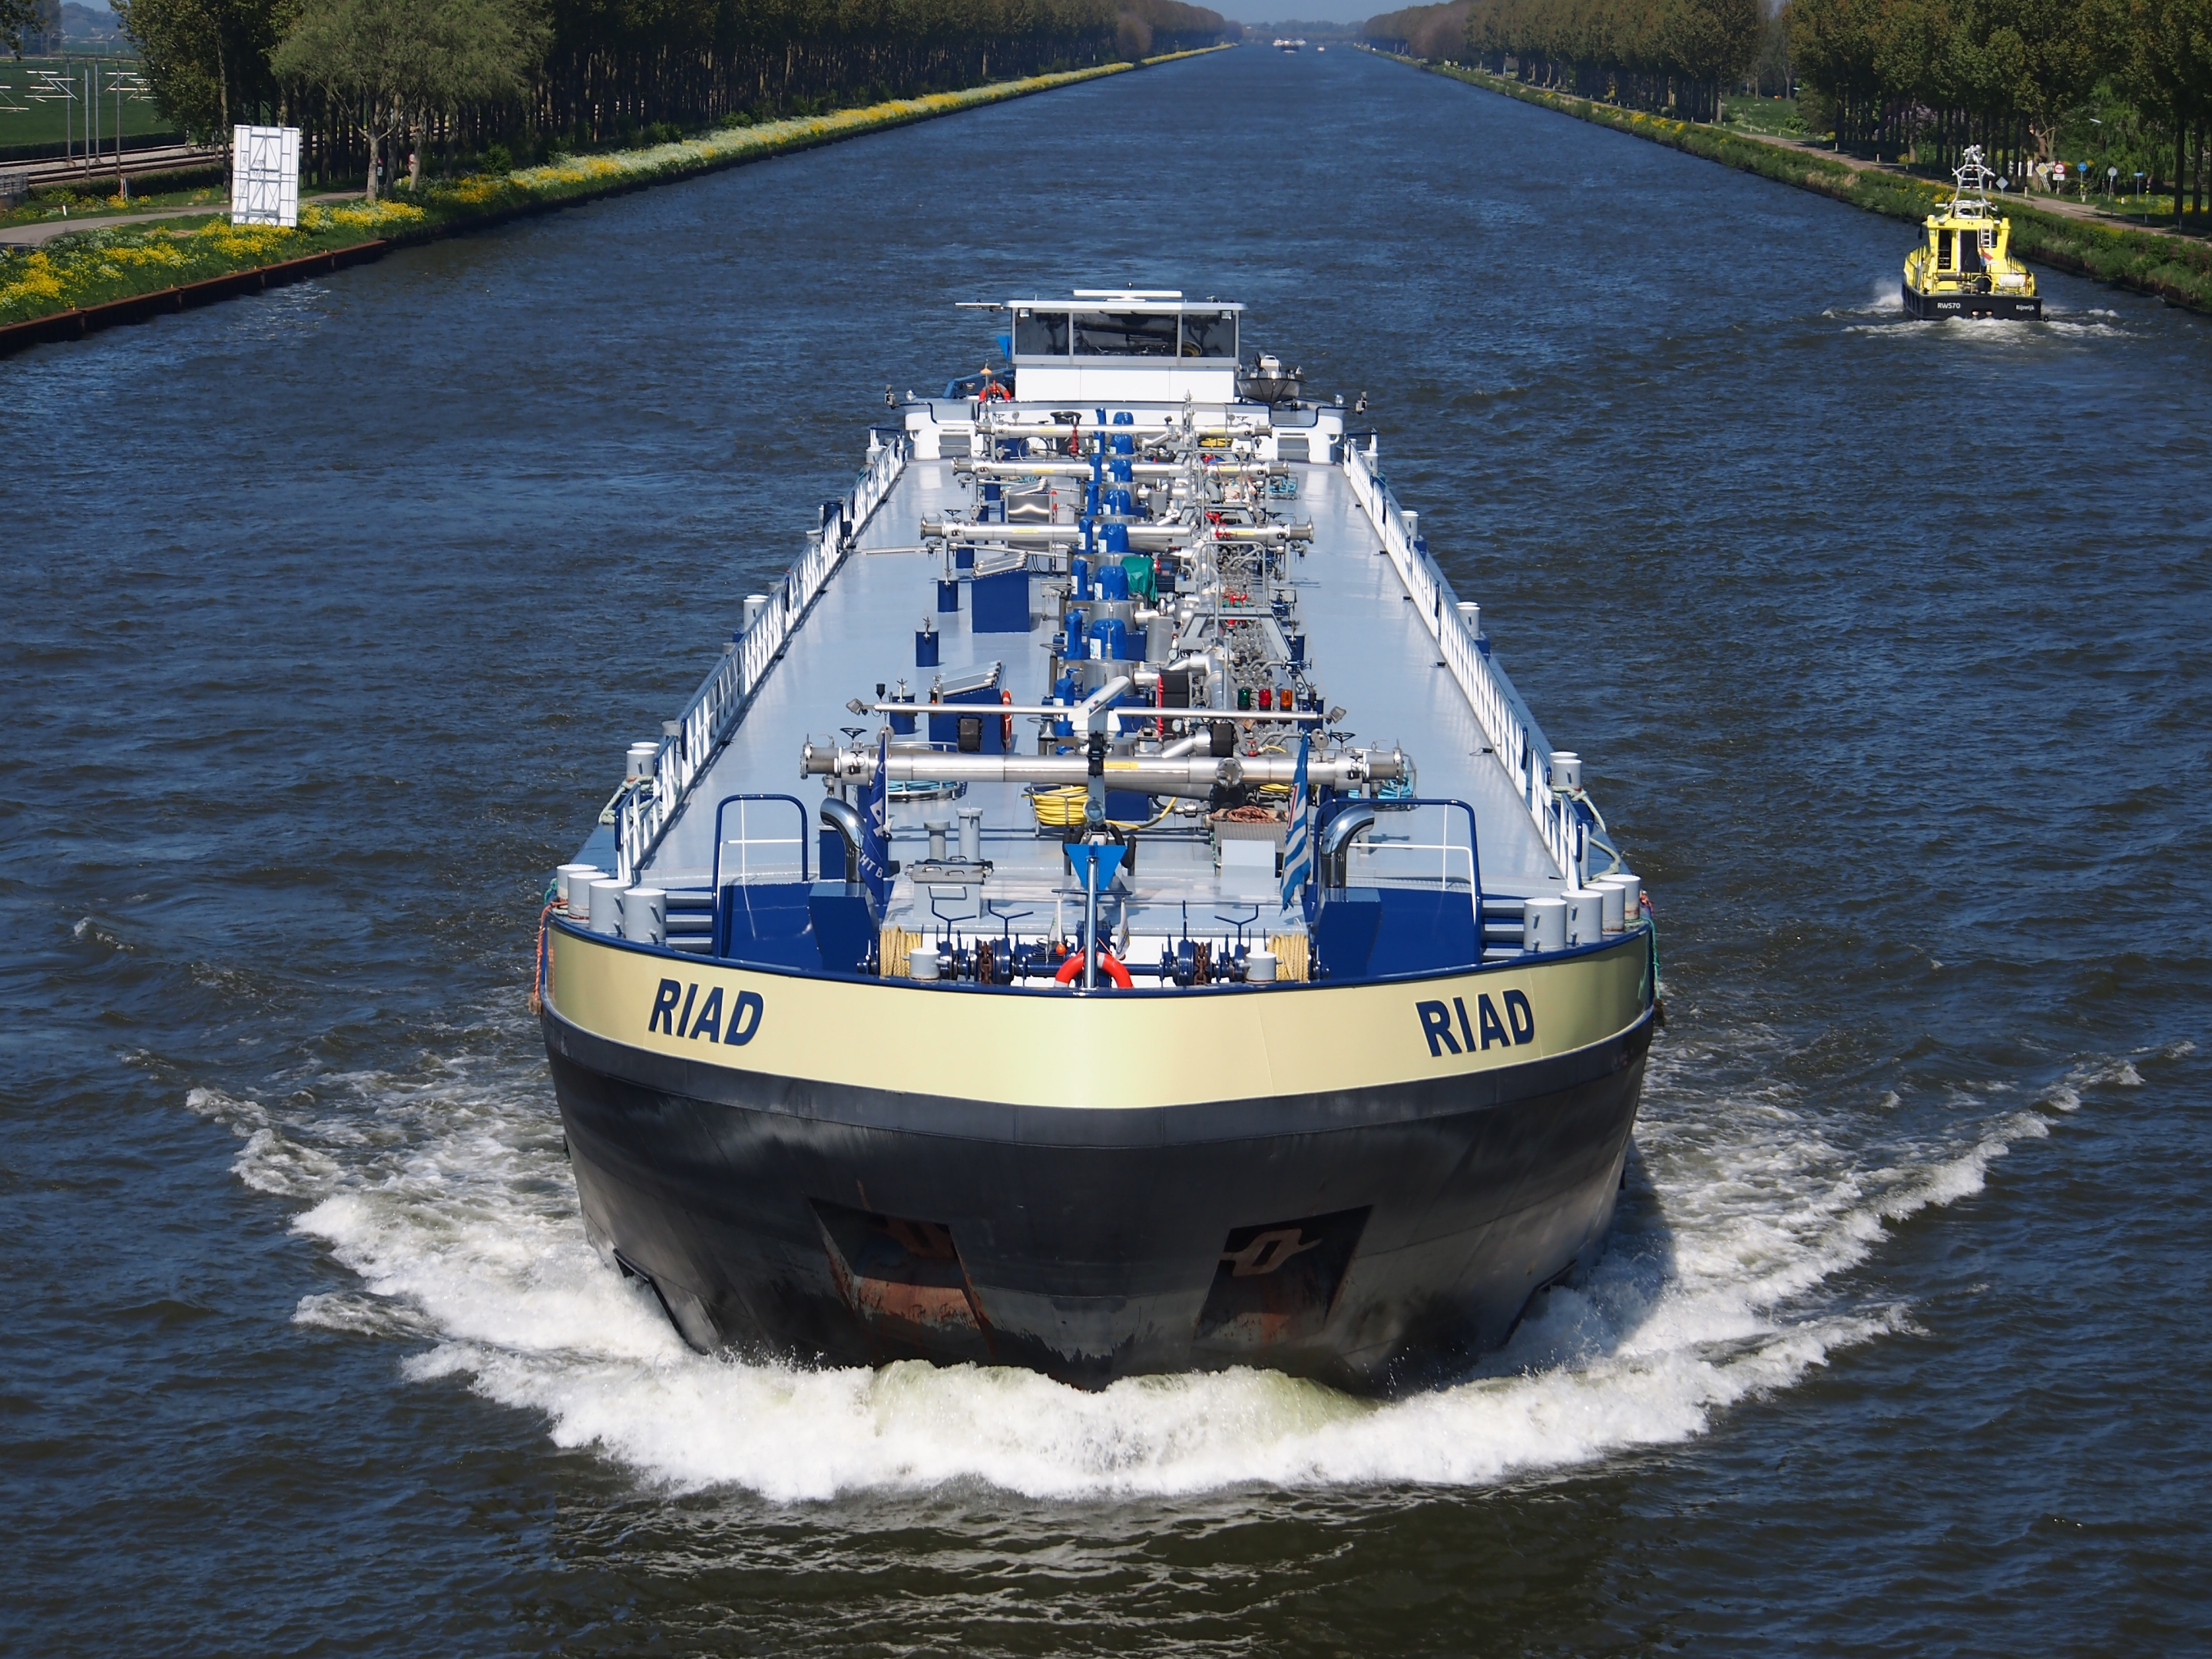 Free download high resolution image - free image free photo free stock image public domain picture -Cargo Amsterdam-Rhin canal, Pays-Bas